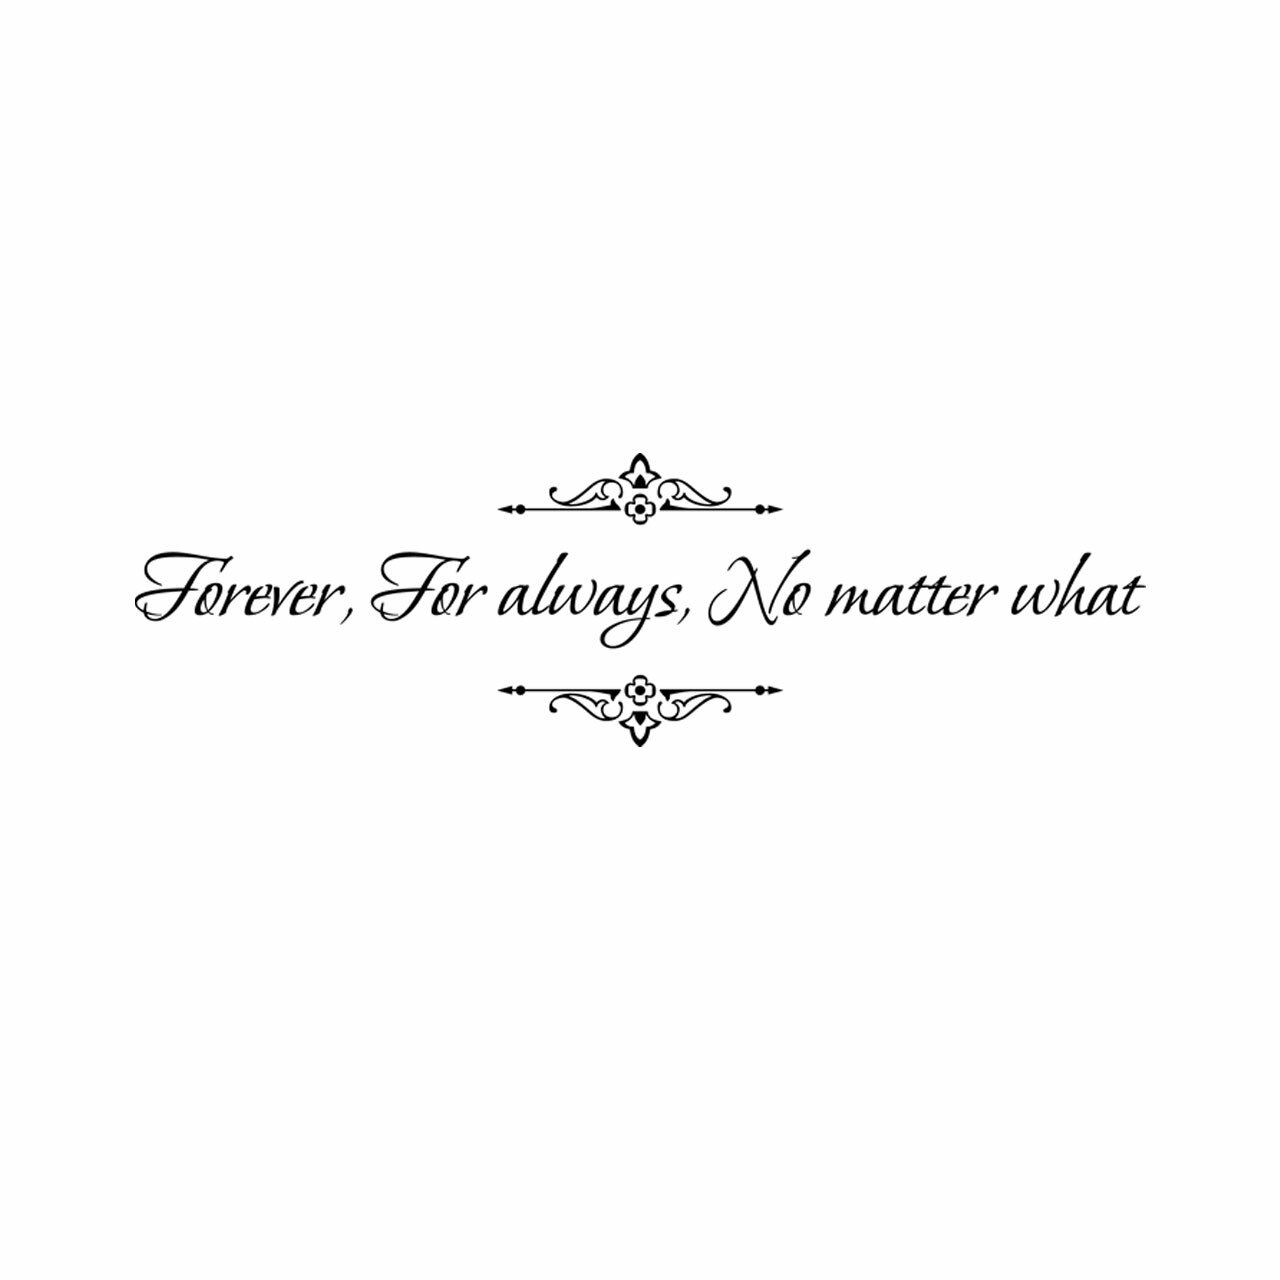 Forever for always no matter what vinyl lettering layout in black on a white background